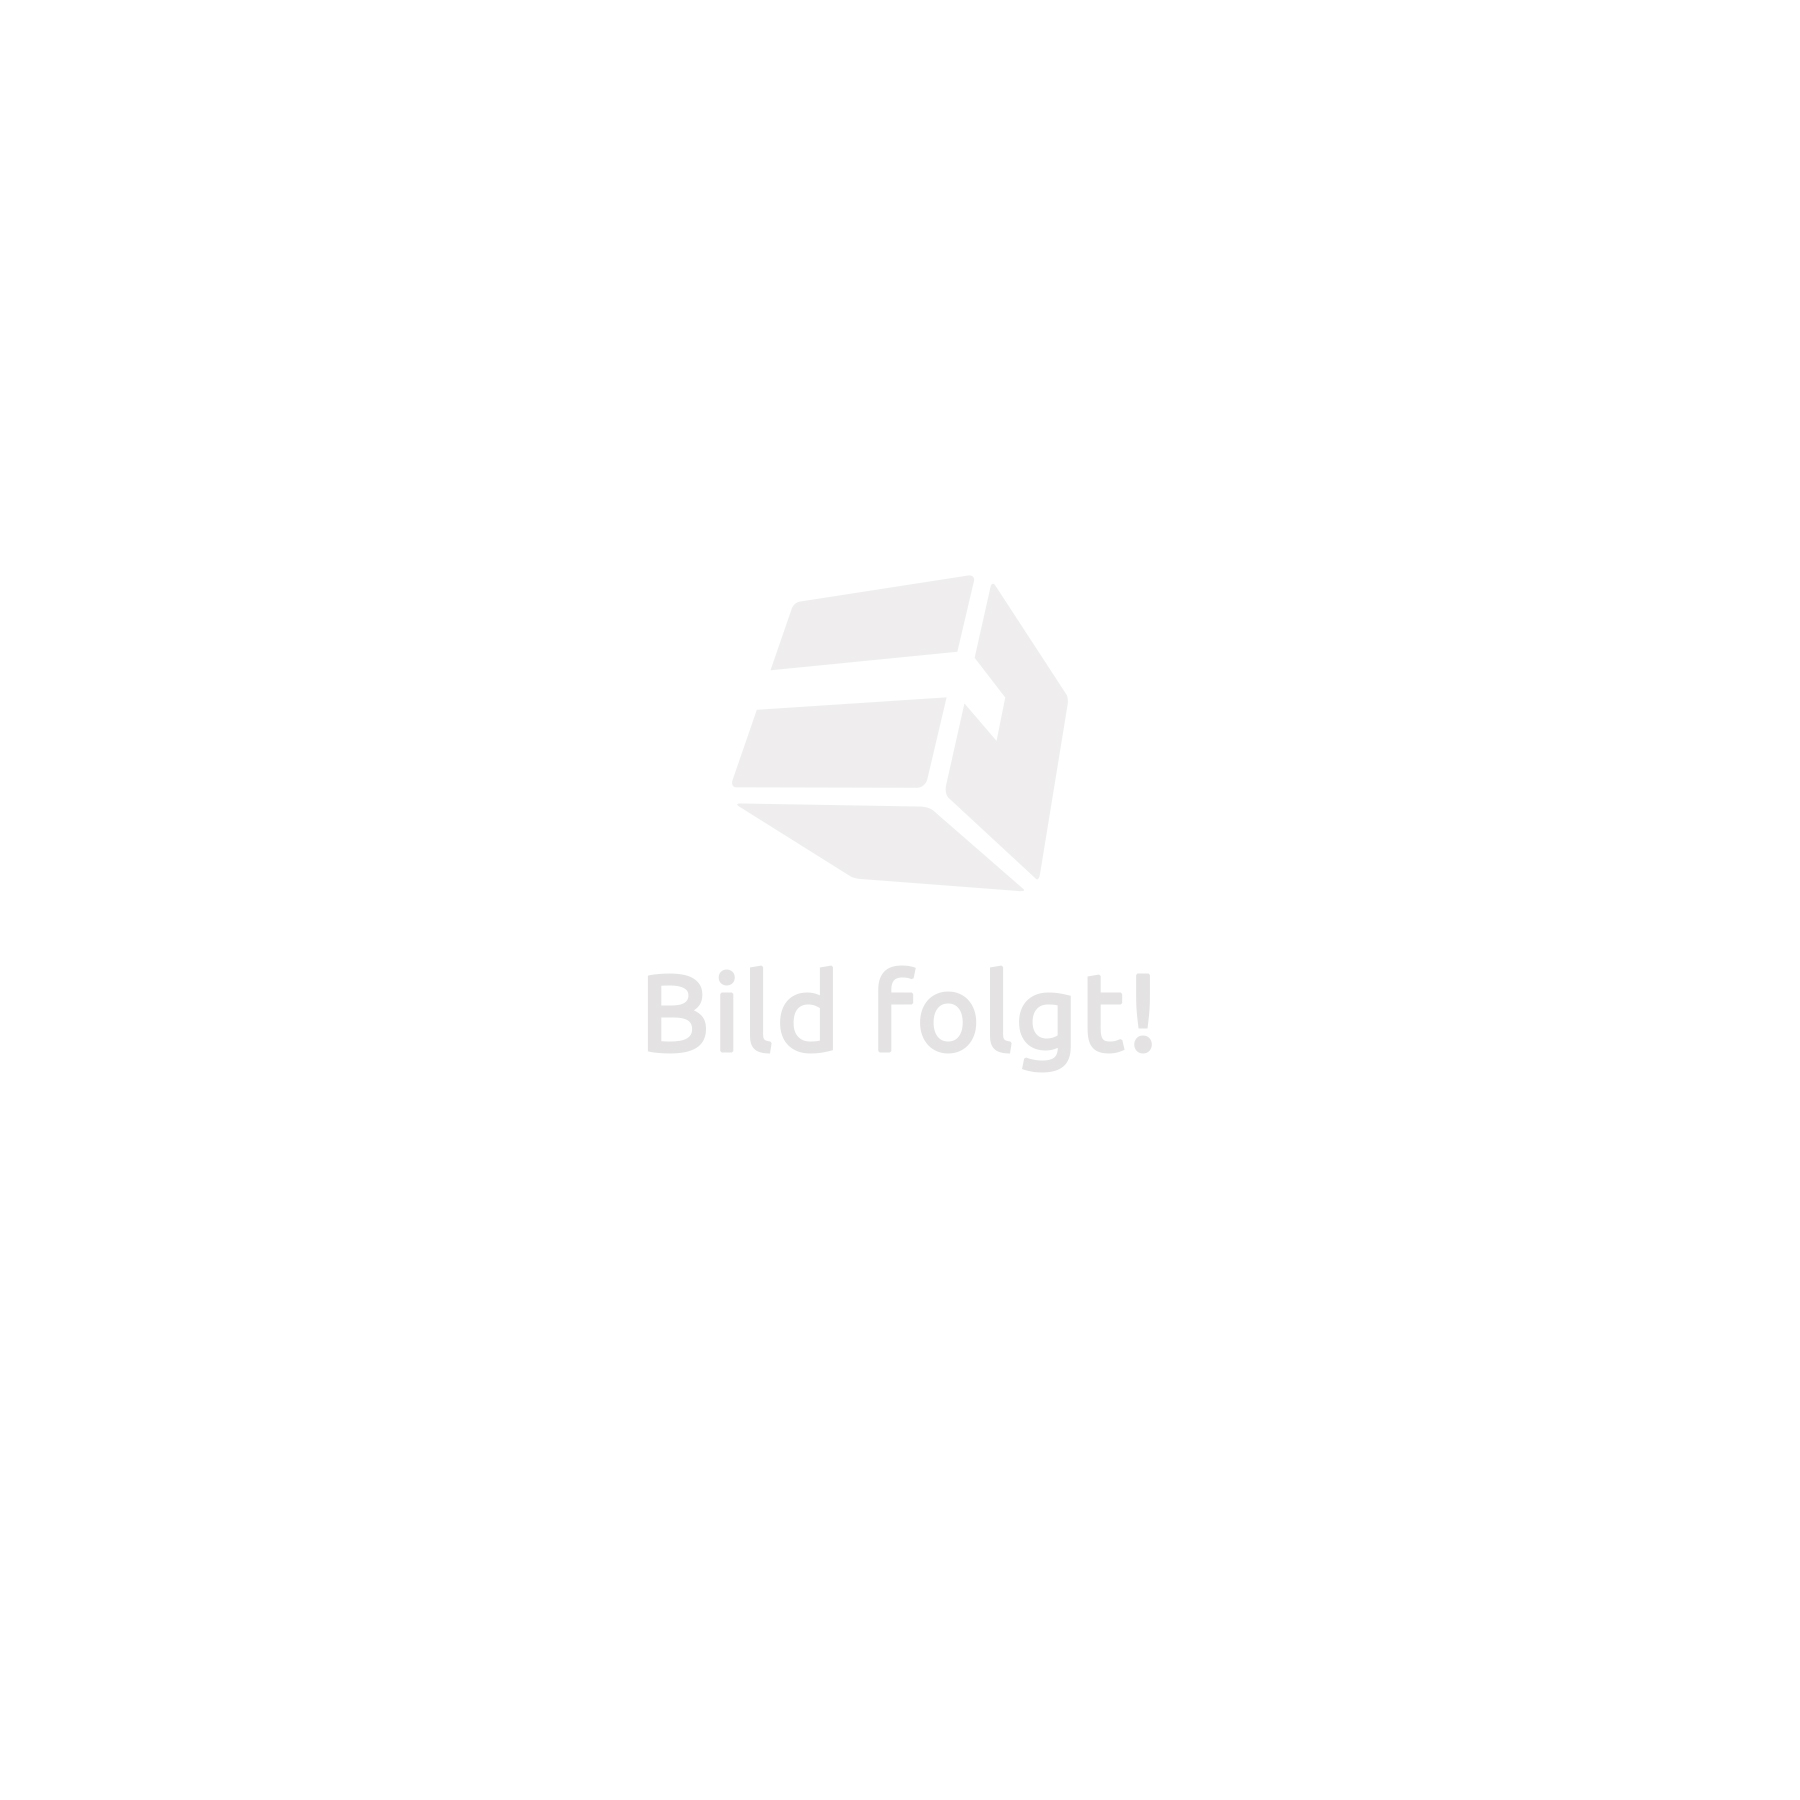 "Soporte de pared para monitores planos de 32-55"" orientable e inclinable, con nivel de aire, peso compatible VESA"